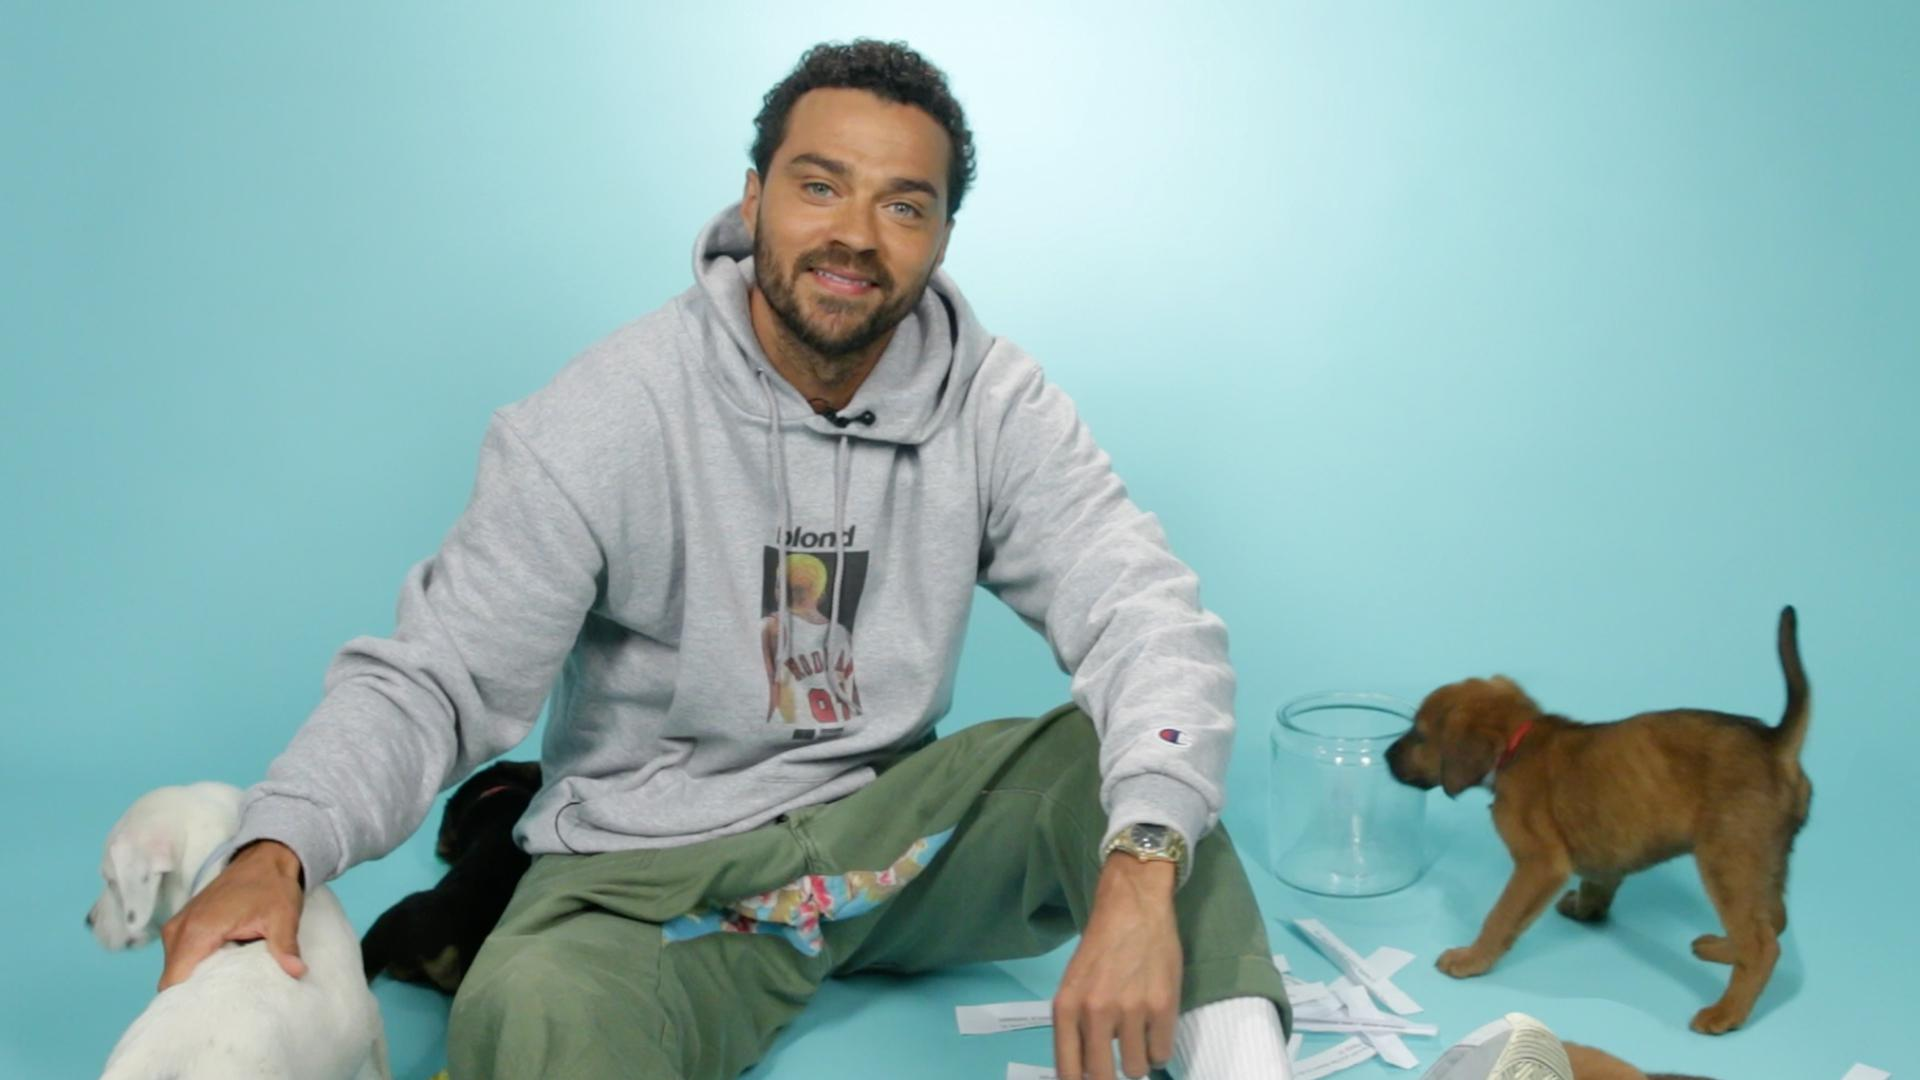 Watch: BuzzFeed Video - Jesse Williams Plays With Puppies While Answering Fan Questions